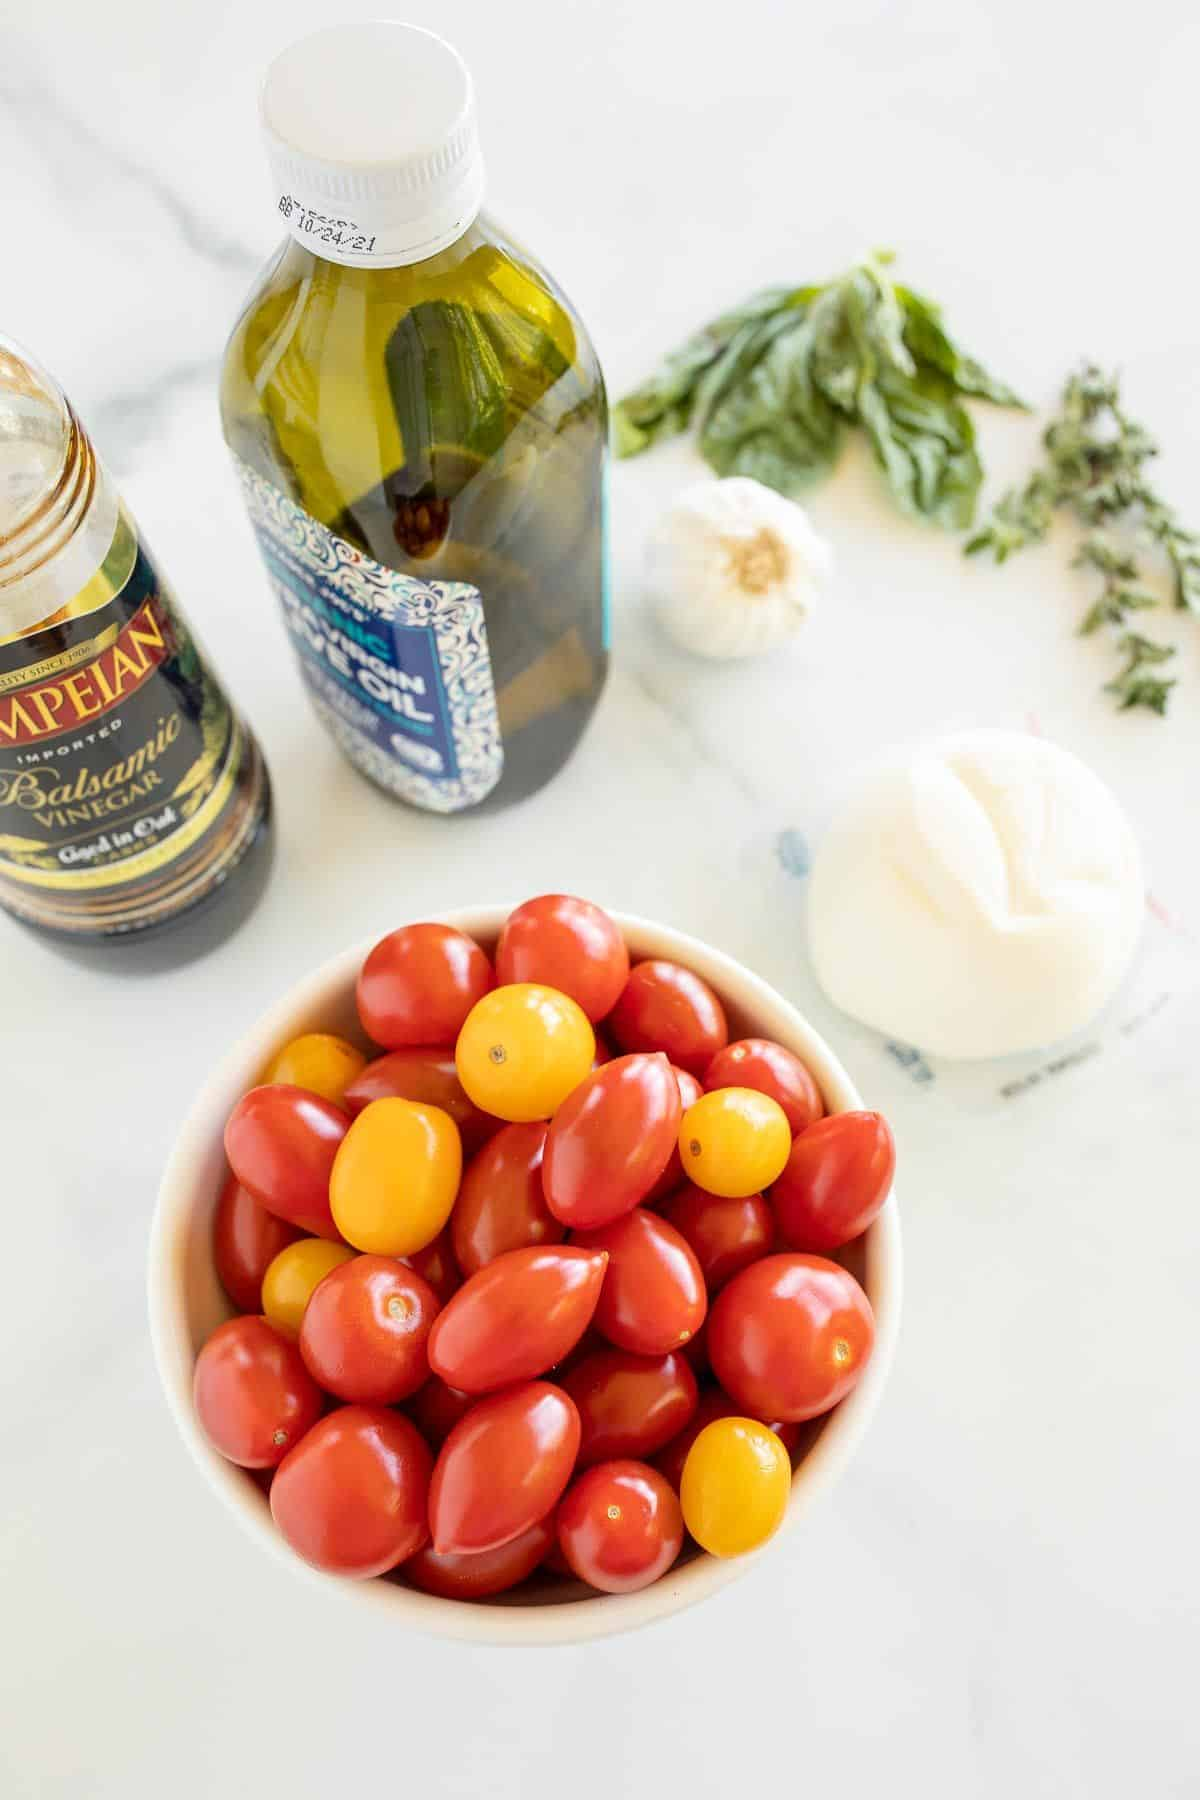 Ingredients for a baked burrata recipe, including cherry tomatoes, olive oil, burrata cheese and more.